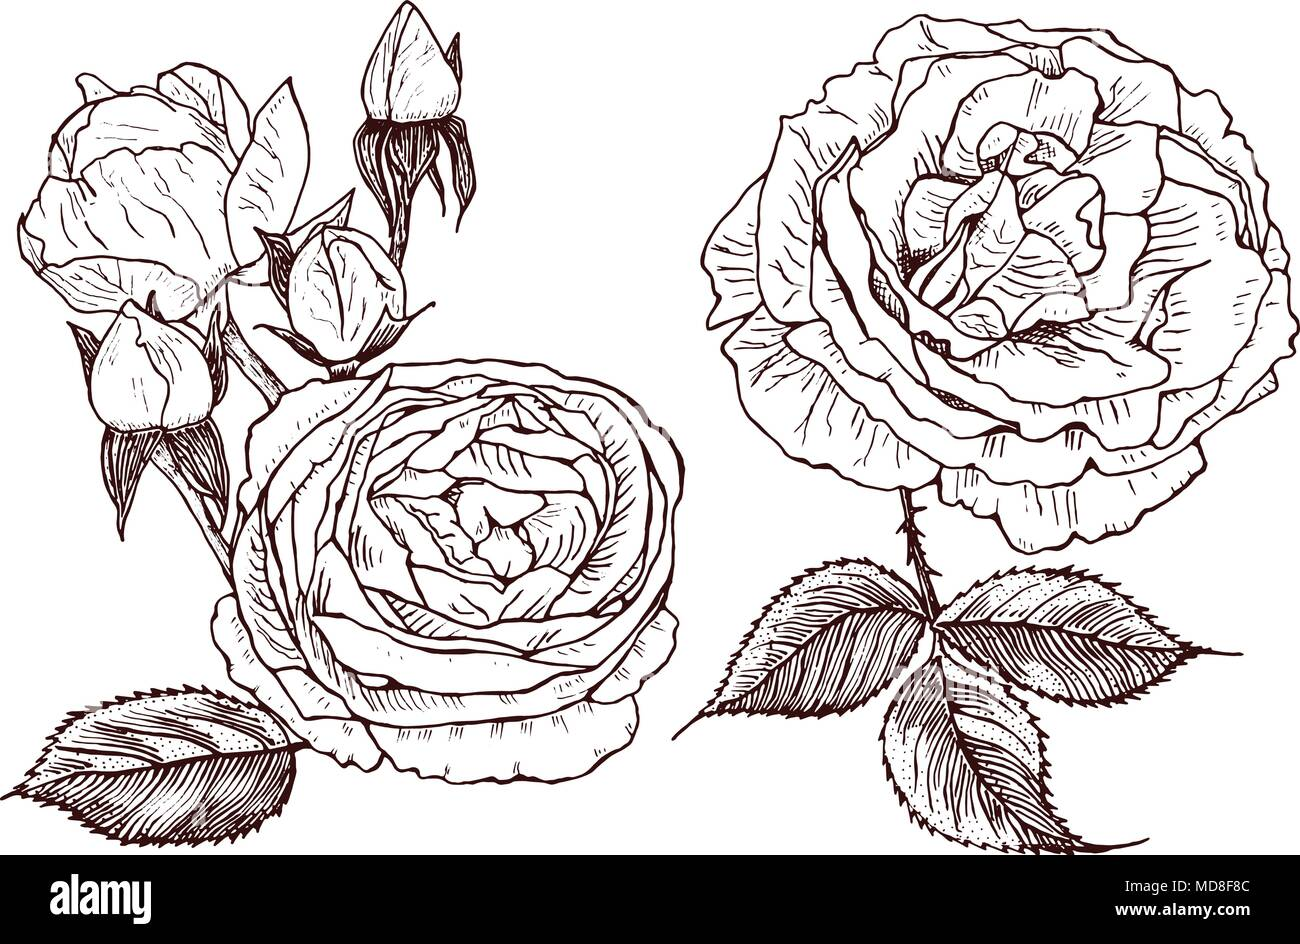 Silhouette Rose Bud In Garden Stock Vector Images Alamy Flower Line Diagram Simple Drawing Of Wedding Botanical Flowers The Or Spring Plant Roses And Peonies With Leaves